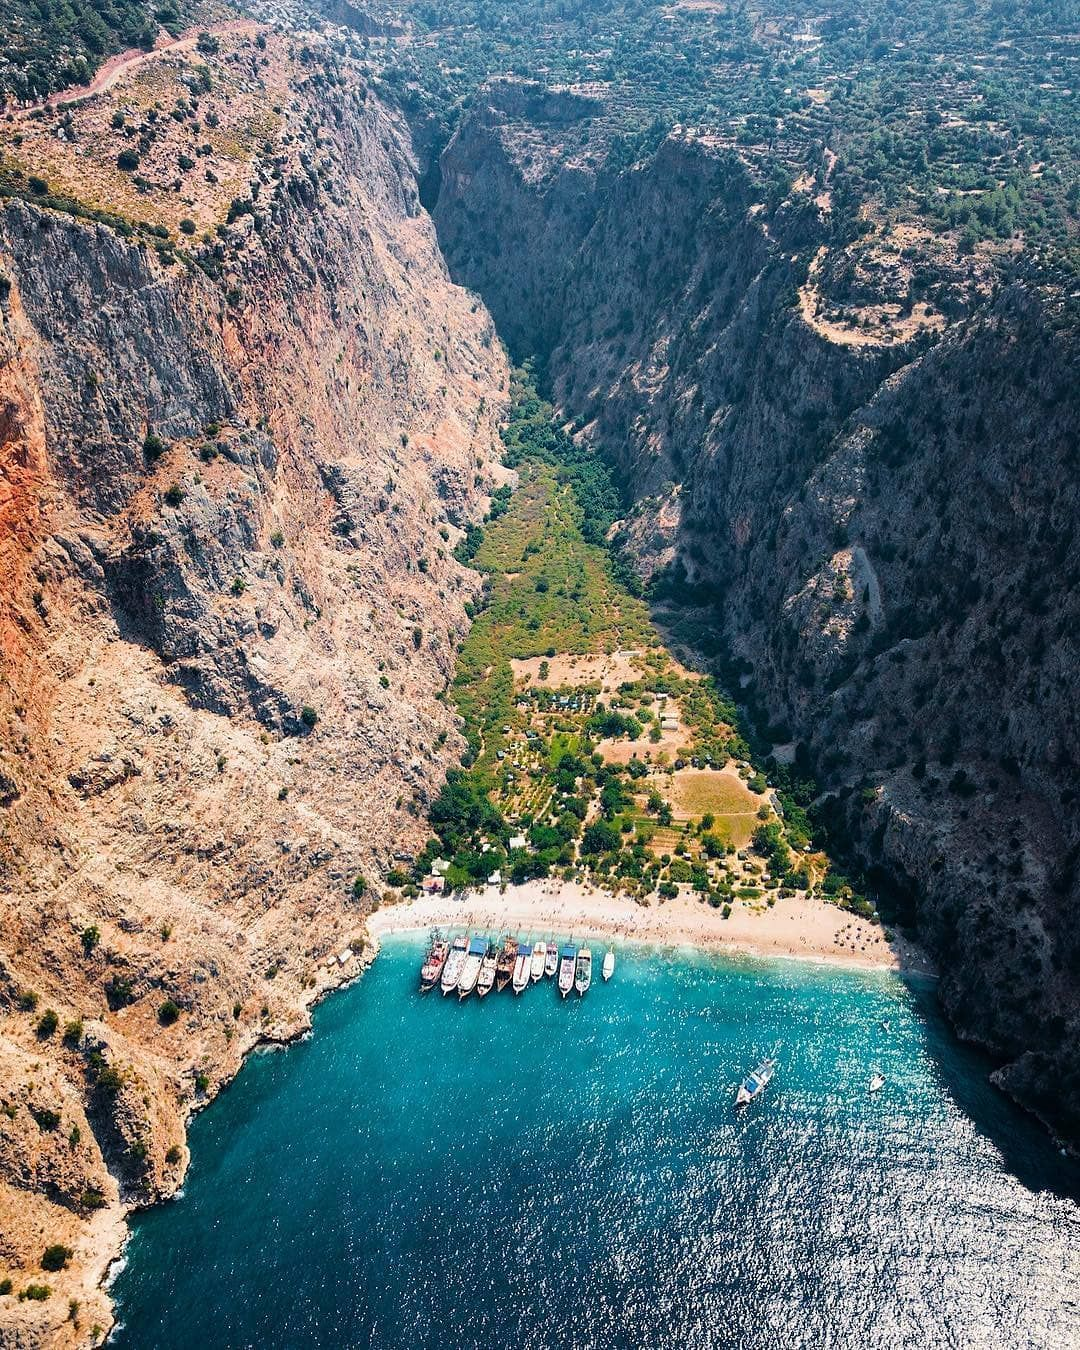 Here are 23 Things To Do In Fethiye, Turkey. Don't leave until you read this top list of the things to do when you're visiting Fethiye on the vacation!